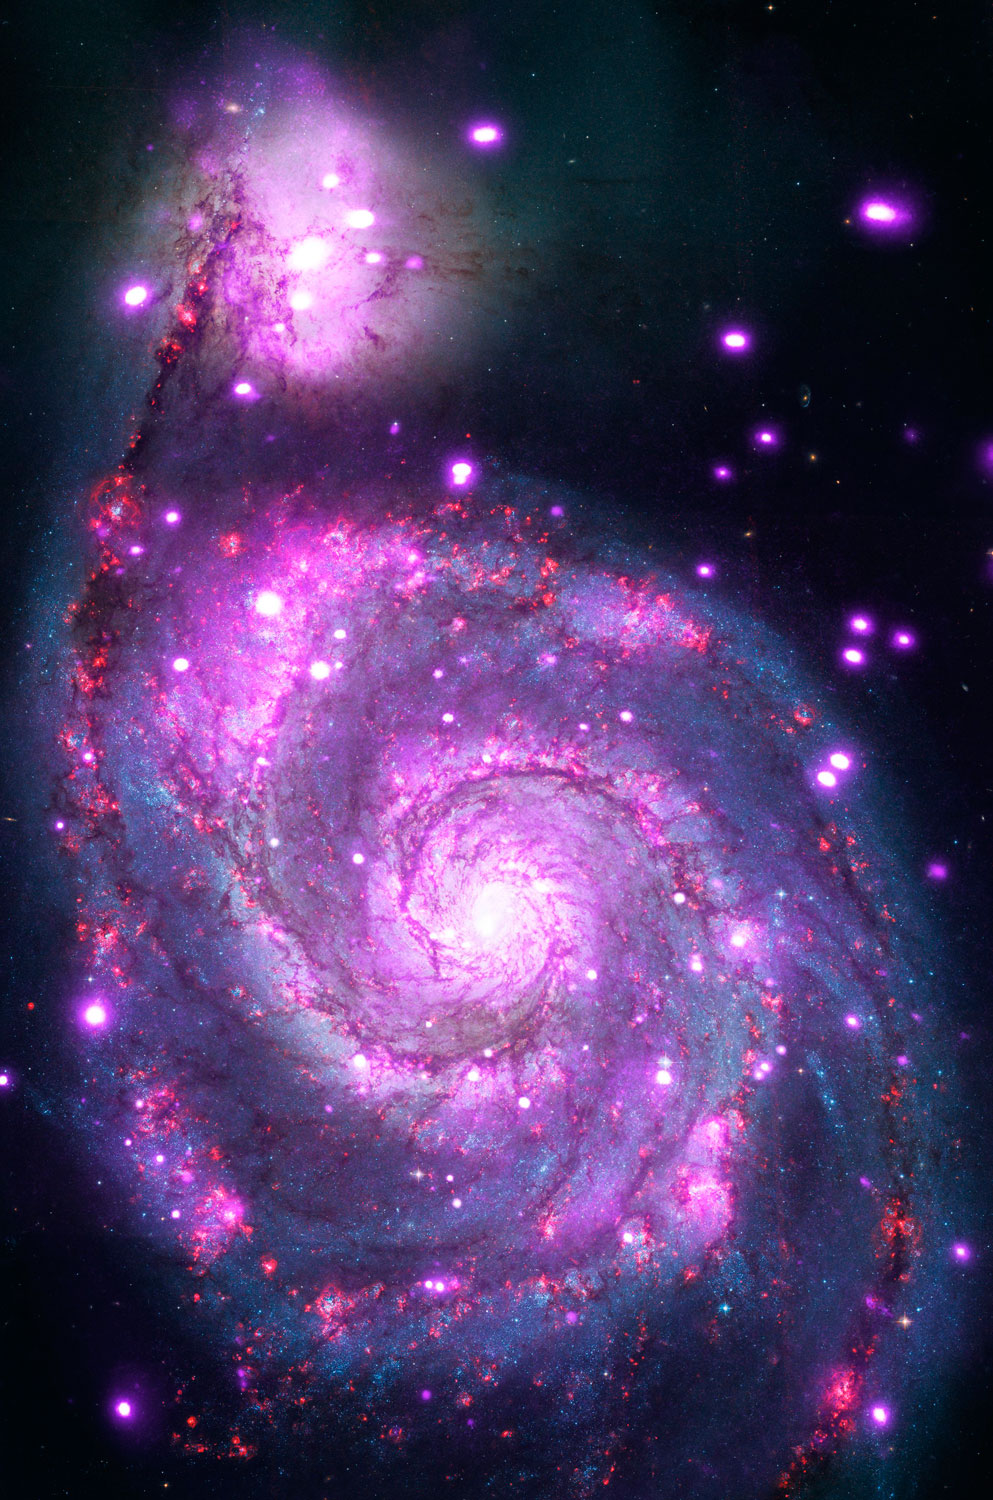 Like the Milky Way, the  Whirlpool Galaxy  (Messier 51 or NGC 5194) is a spiral with spectacular arms of stars and dust. It is located 30 million light years from Earth, and its face-on orientation gives us a perspective that we can never get of our own spiral home.